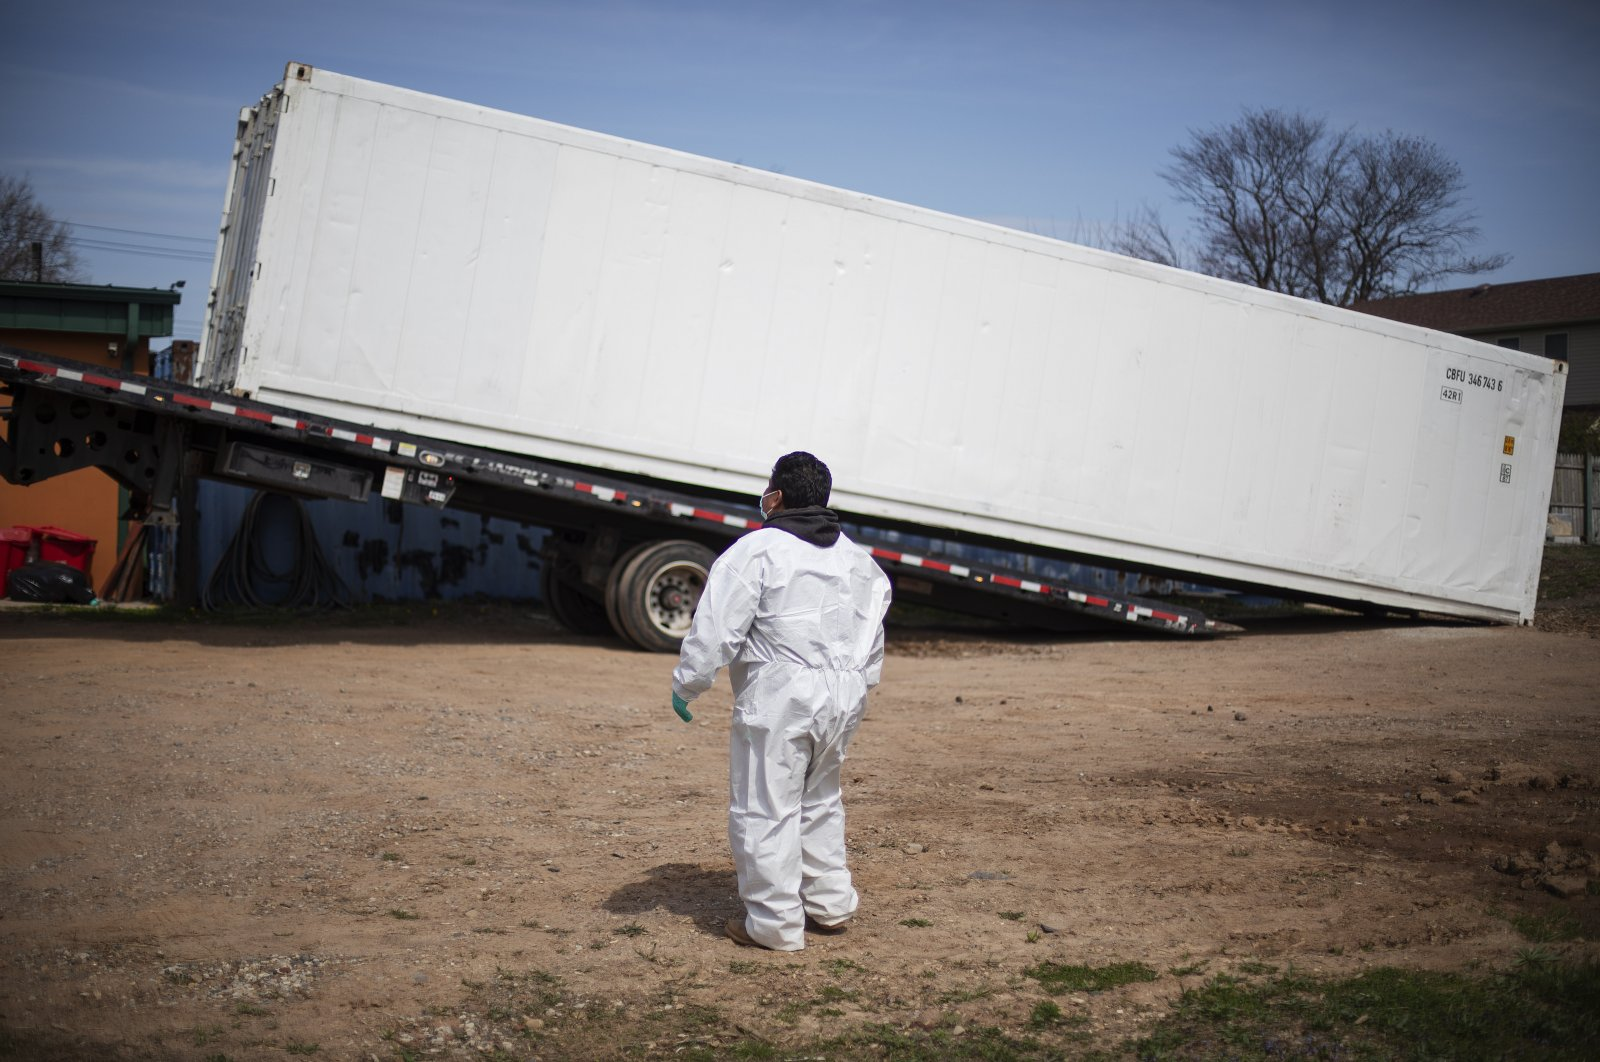 Gravedigger Thomas Cortez watches as a refrigerated trailer is delivered to keep pace with a surge of bodies arriving for burials, mostly those who died from coronavirus, at the Hebrew Free Burial Association's cemetery in the Staten Island borough of New York, U.S., April 7, 2020. (AP Photo)